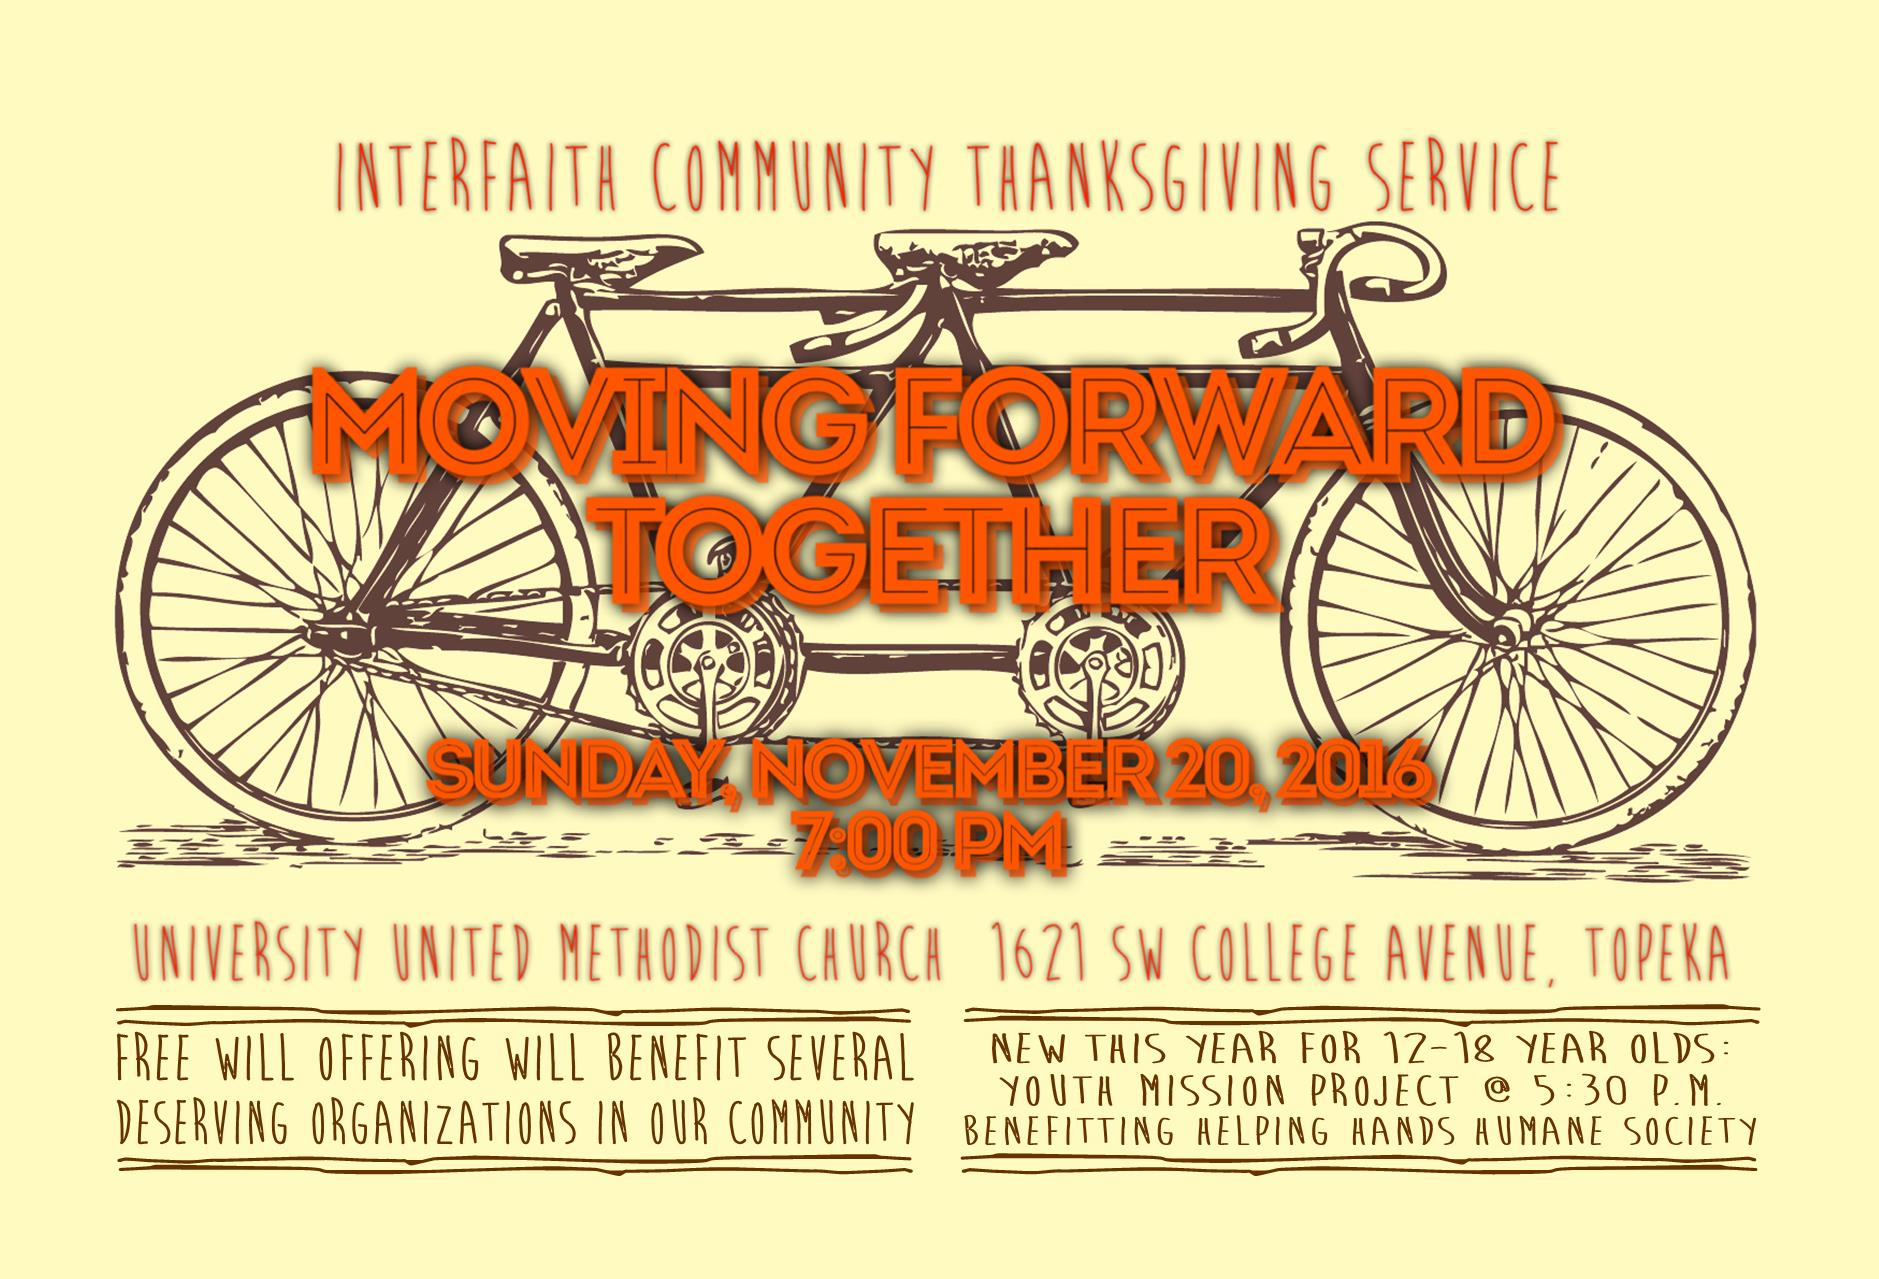 interfaith-thanksgiving-service-2016